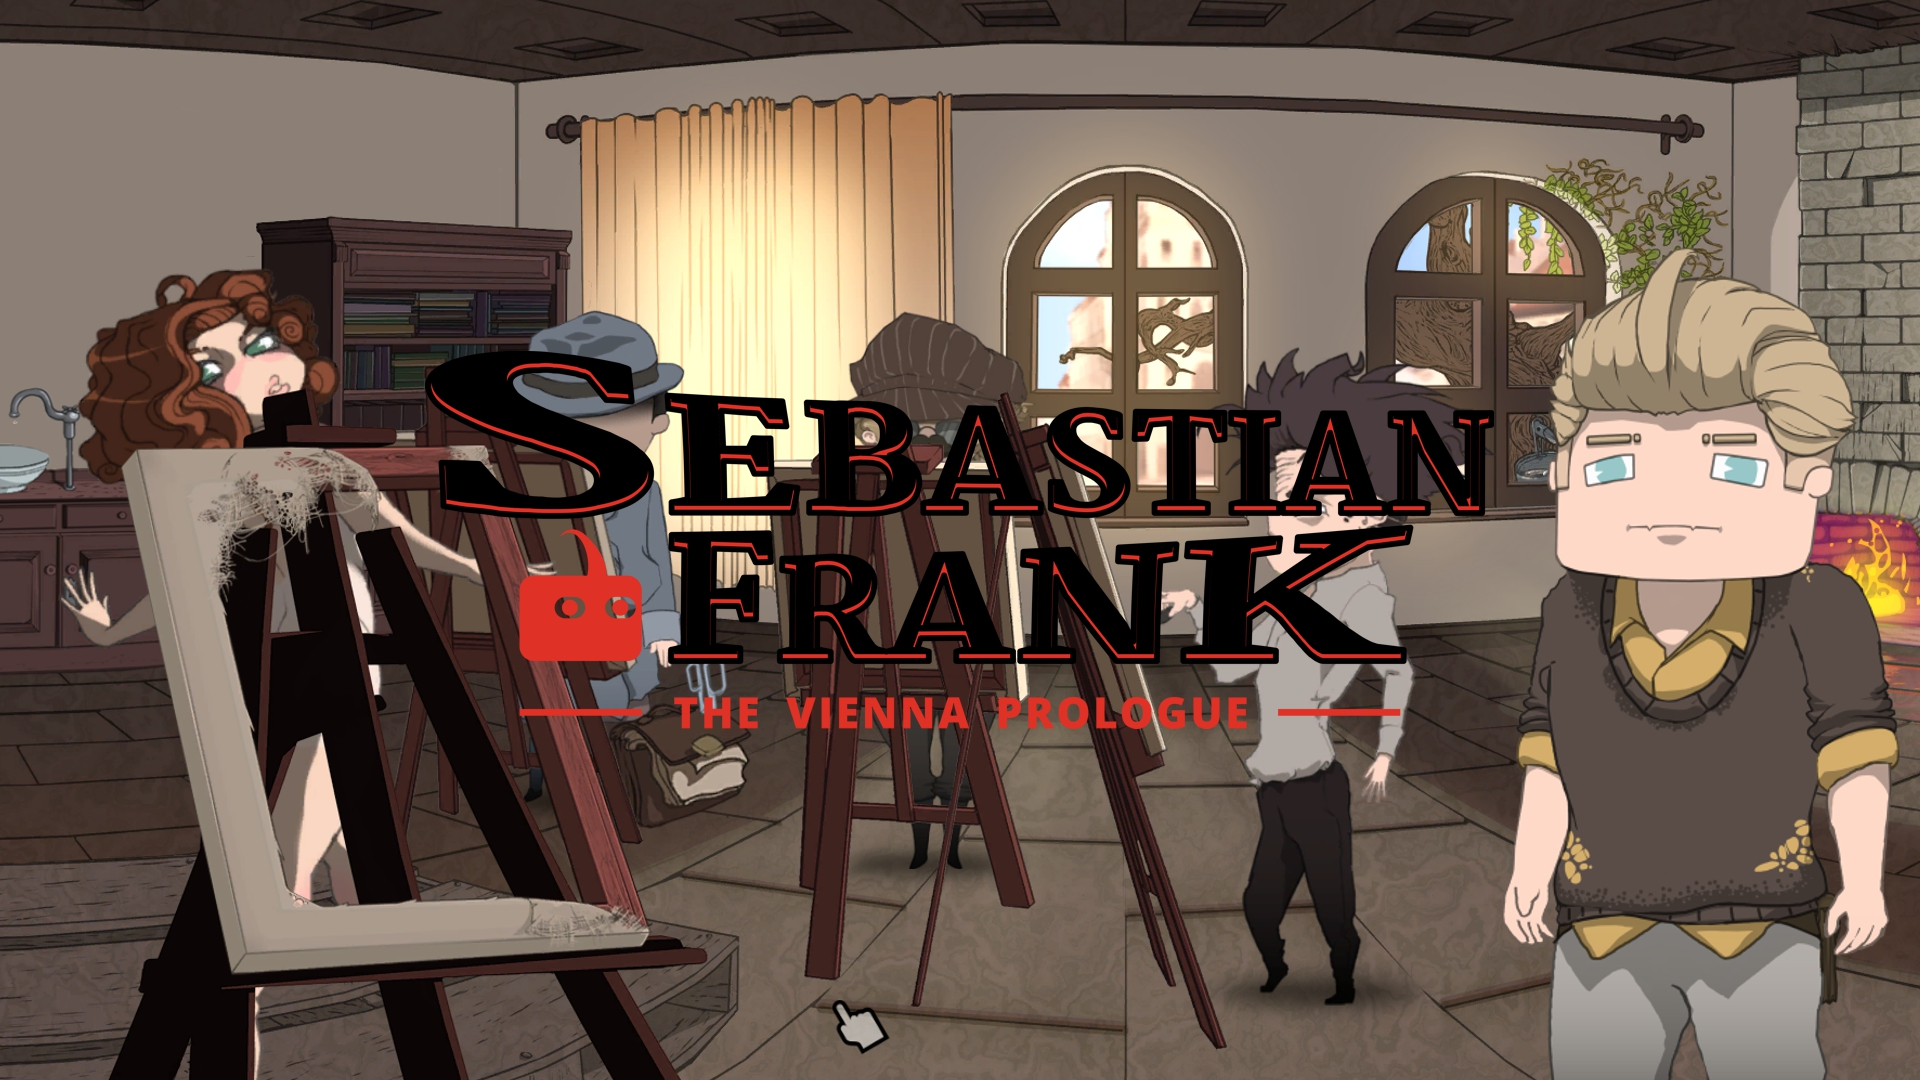 Sebastian Frank - The Vienna Prologue